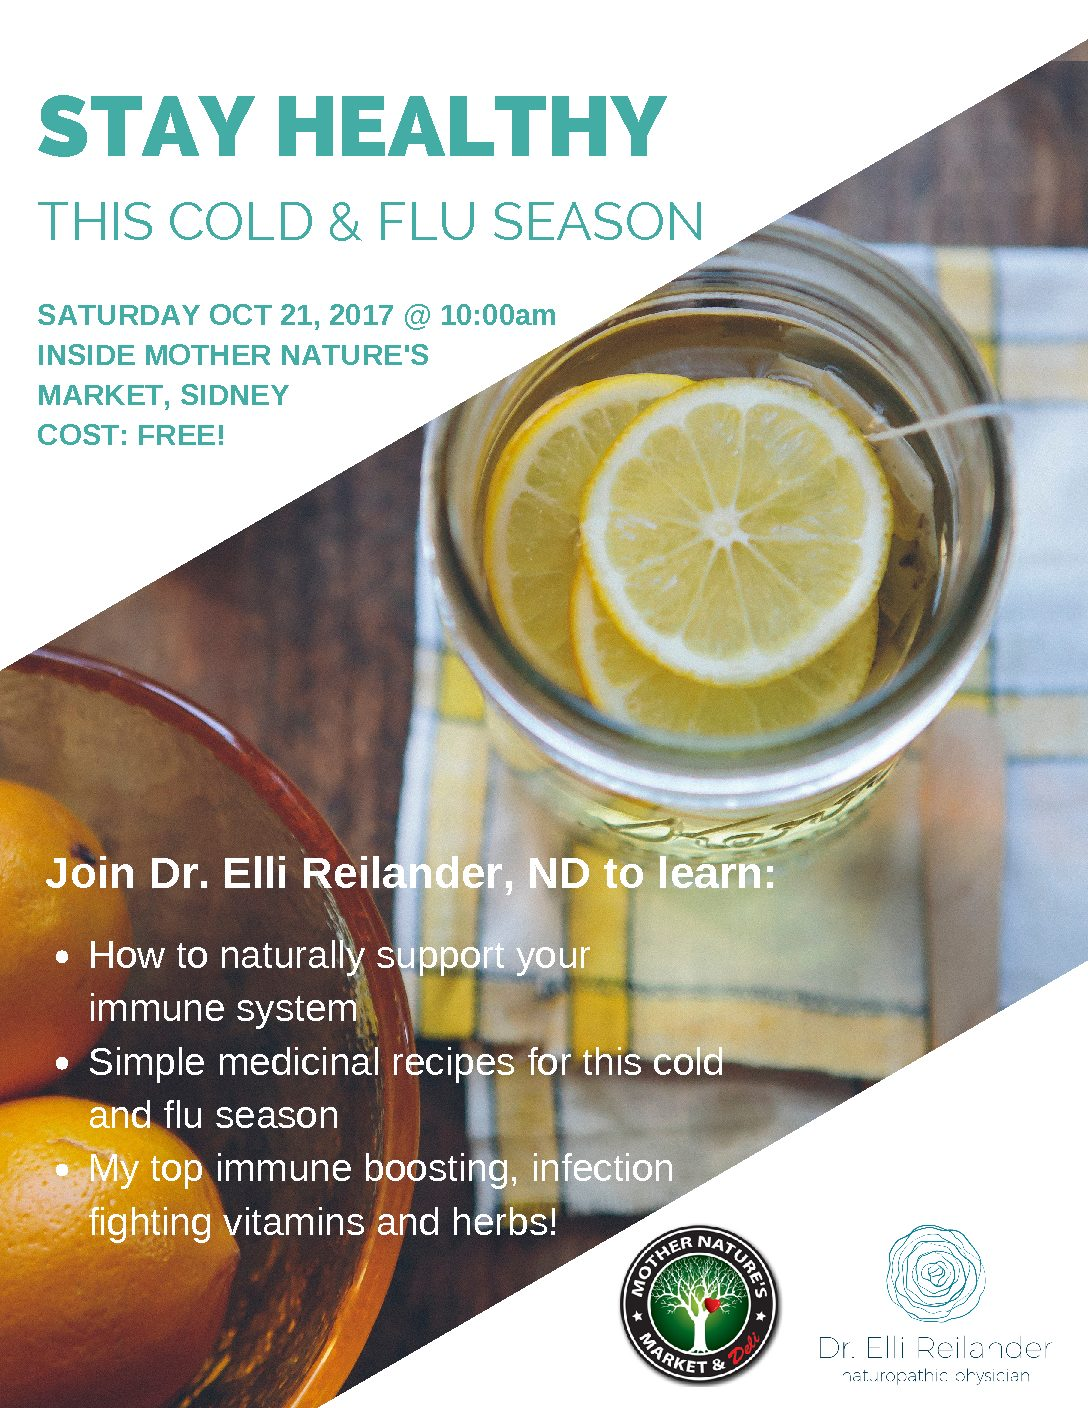 Stay Healthy This Cold & Flu Season